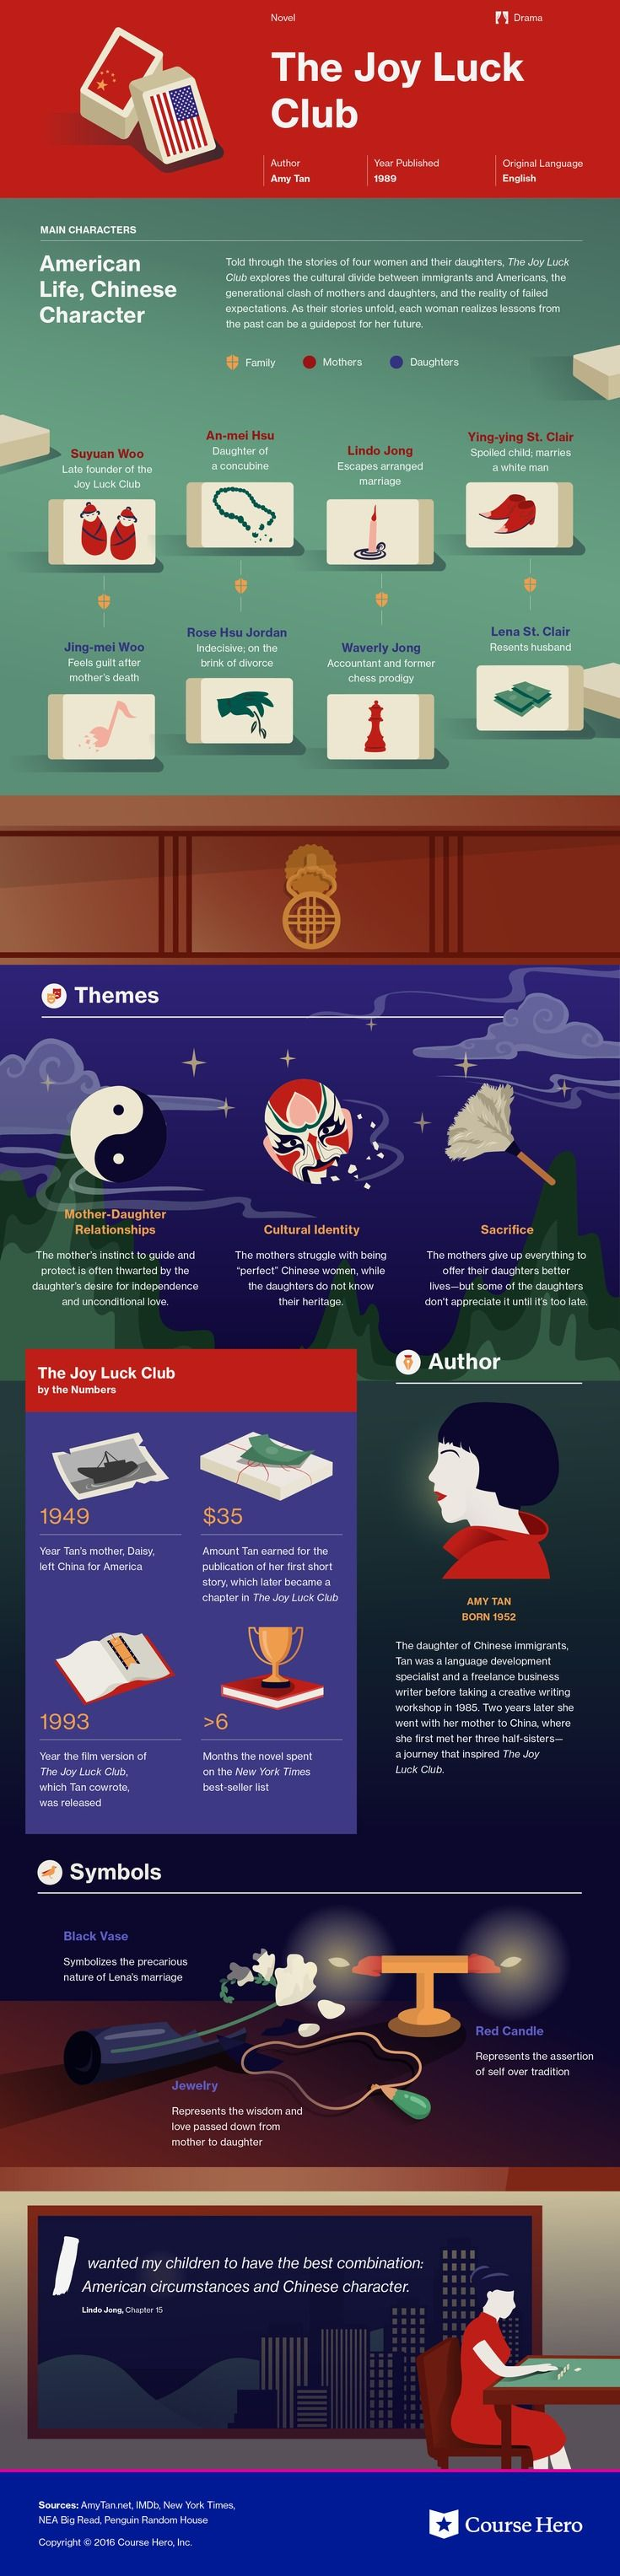 The Joy Luck Club Infographic | Course Hero